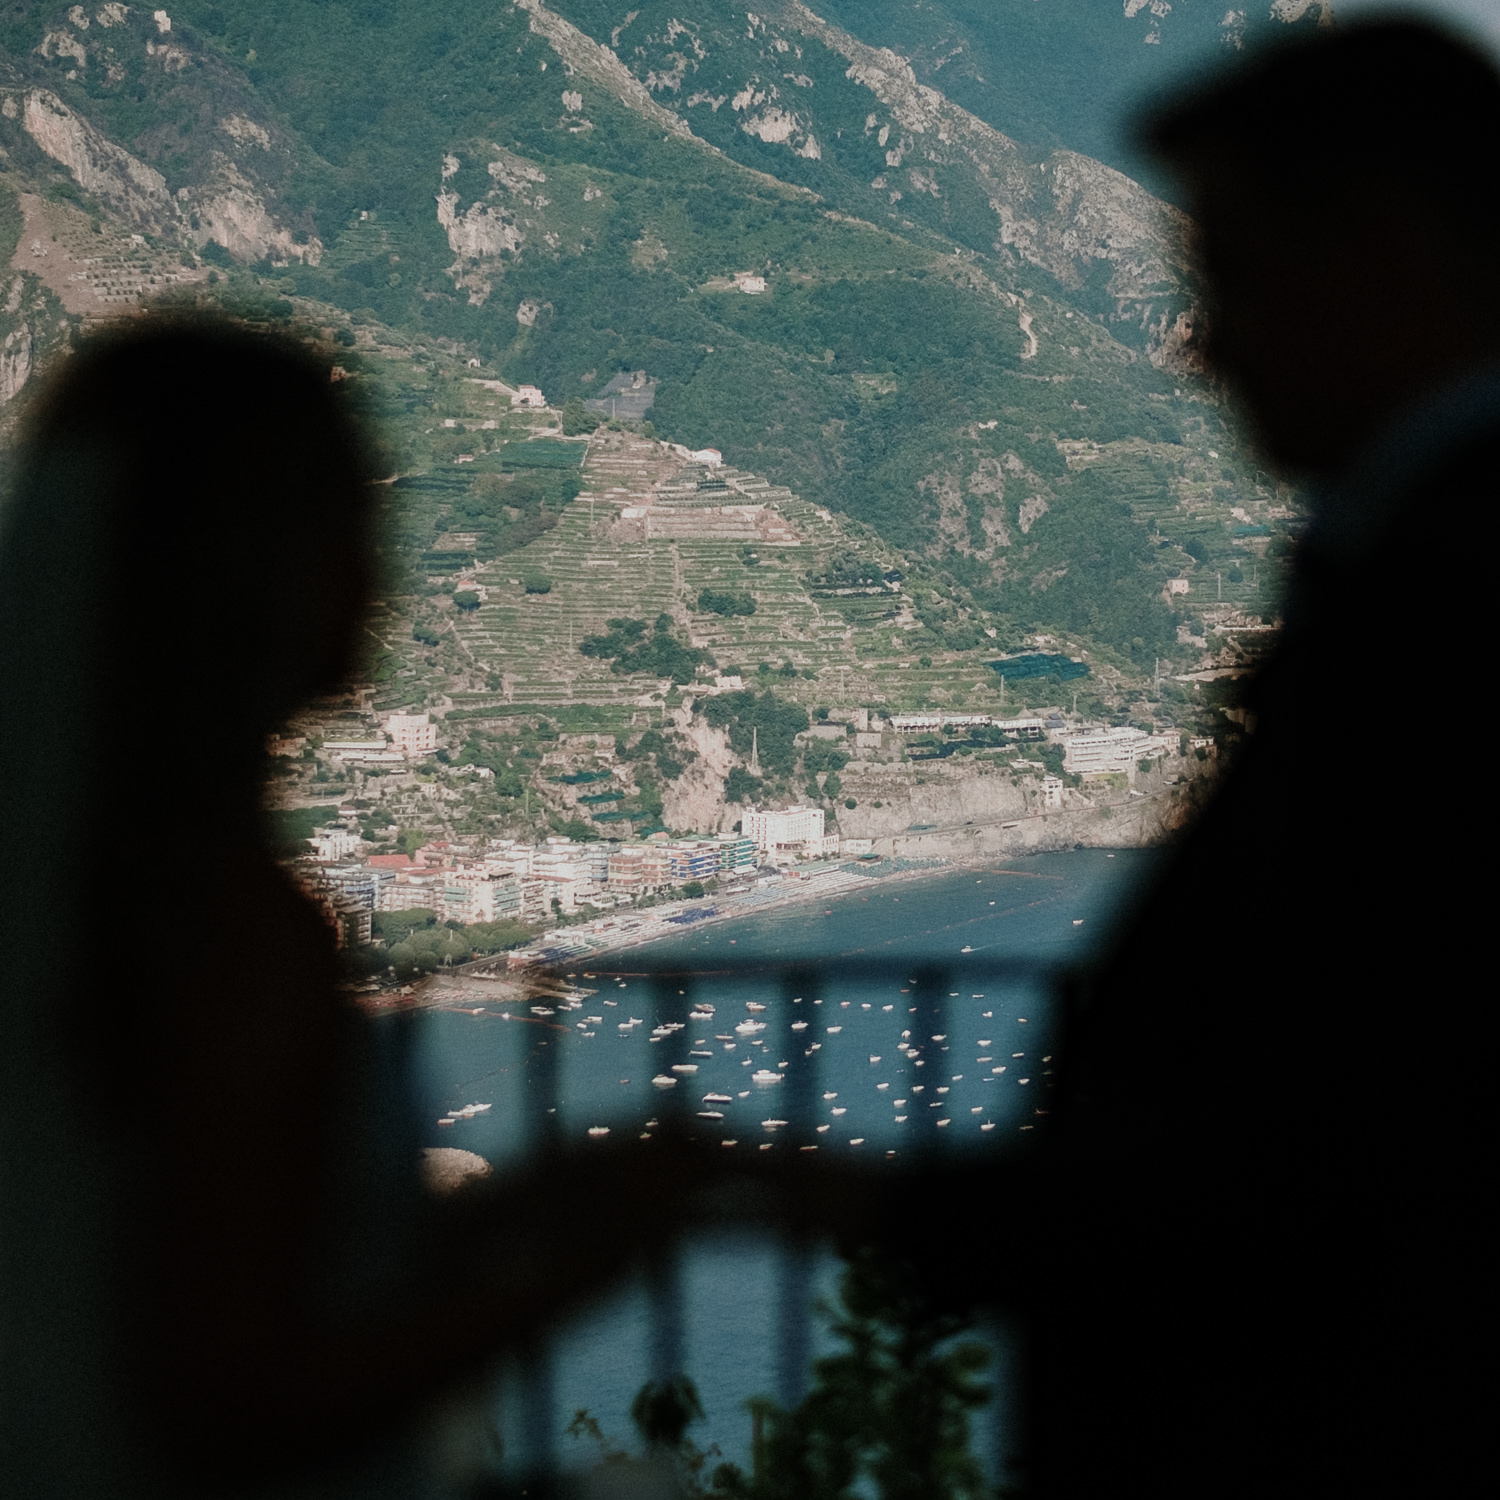 bride-groom-amalfi-coast-background-villa-eva-ravello-francesco-ferrarini